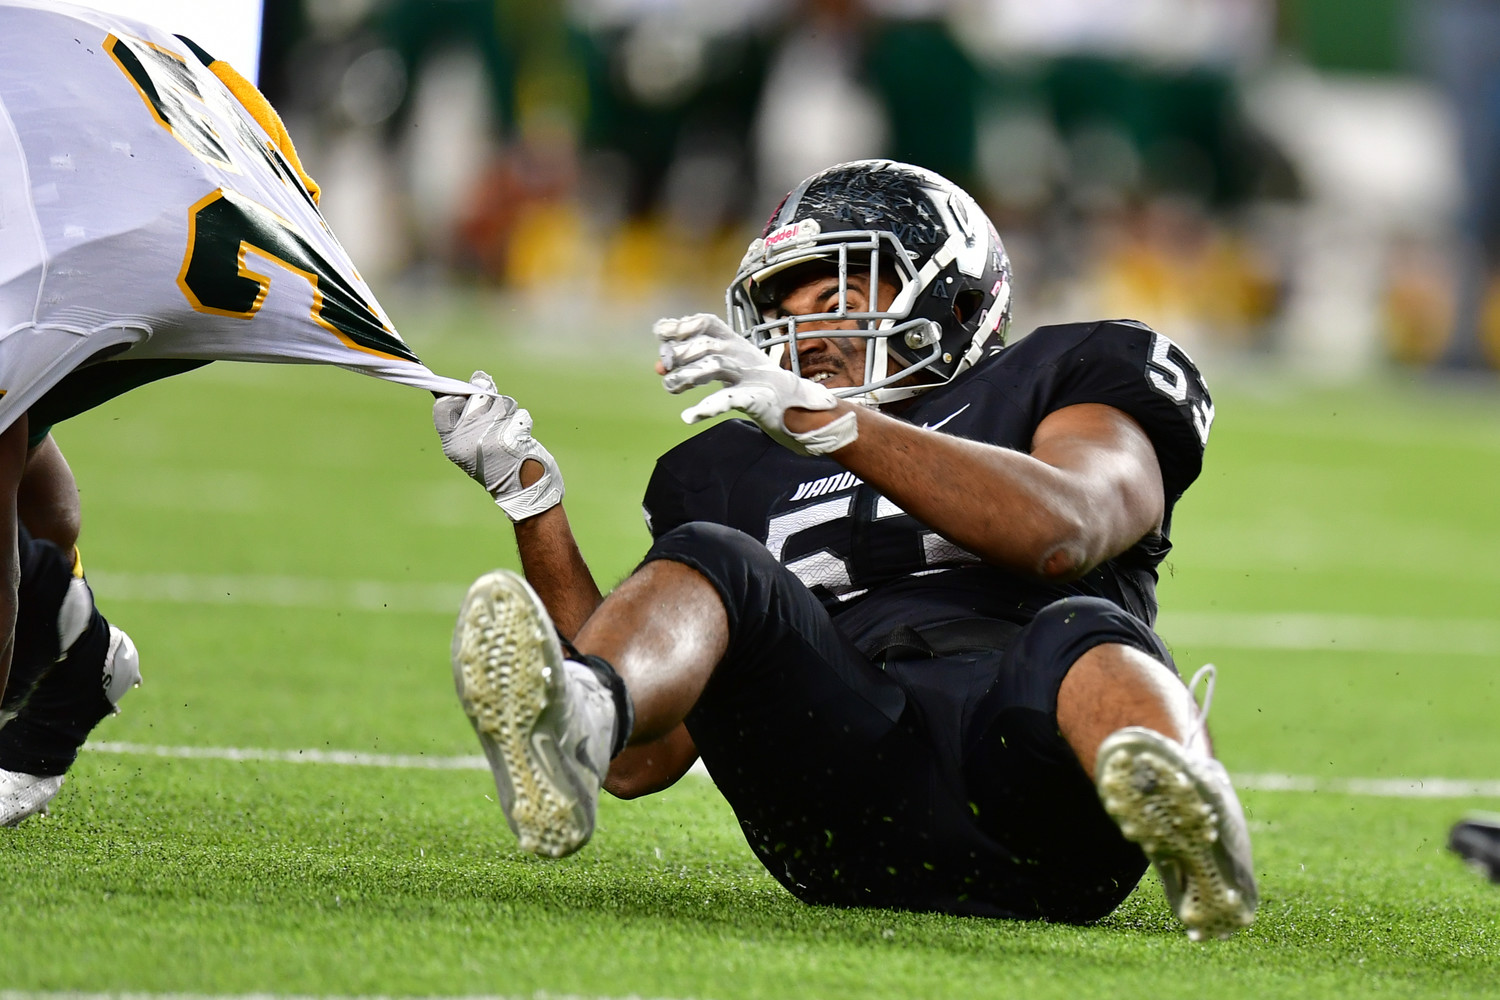 Varun Kalyanapuram and Vandegrift fell to Longview 56-28 in the regional semifinals Saturday at McLane Stadium in Waco.